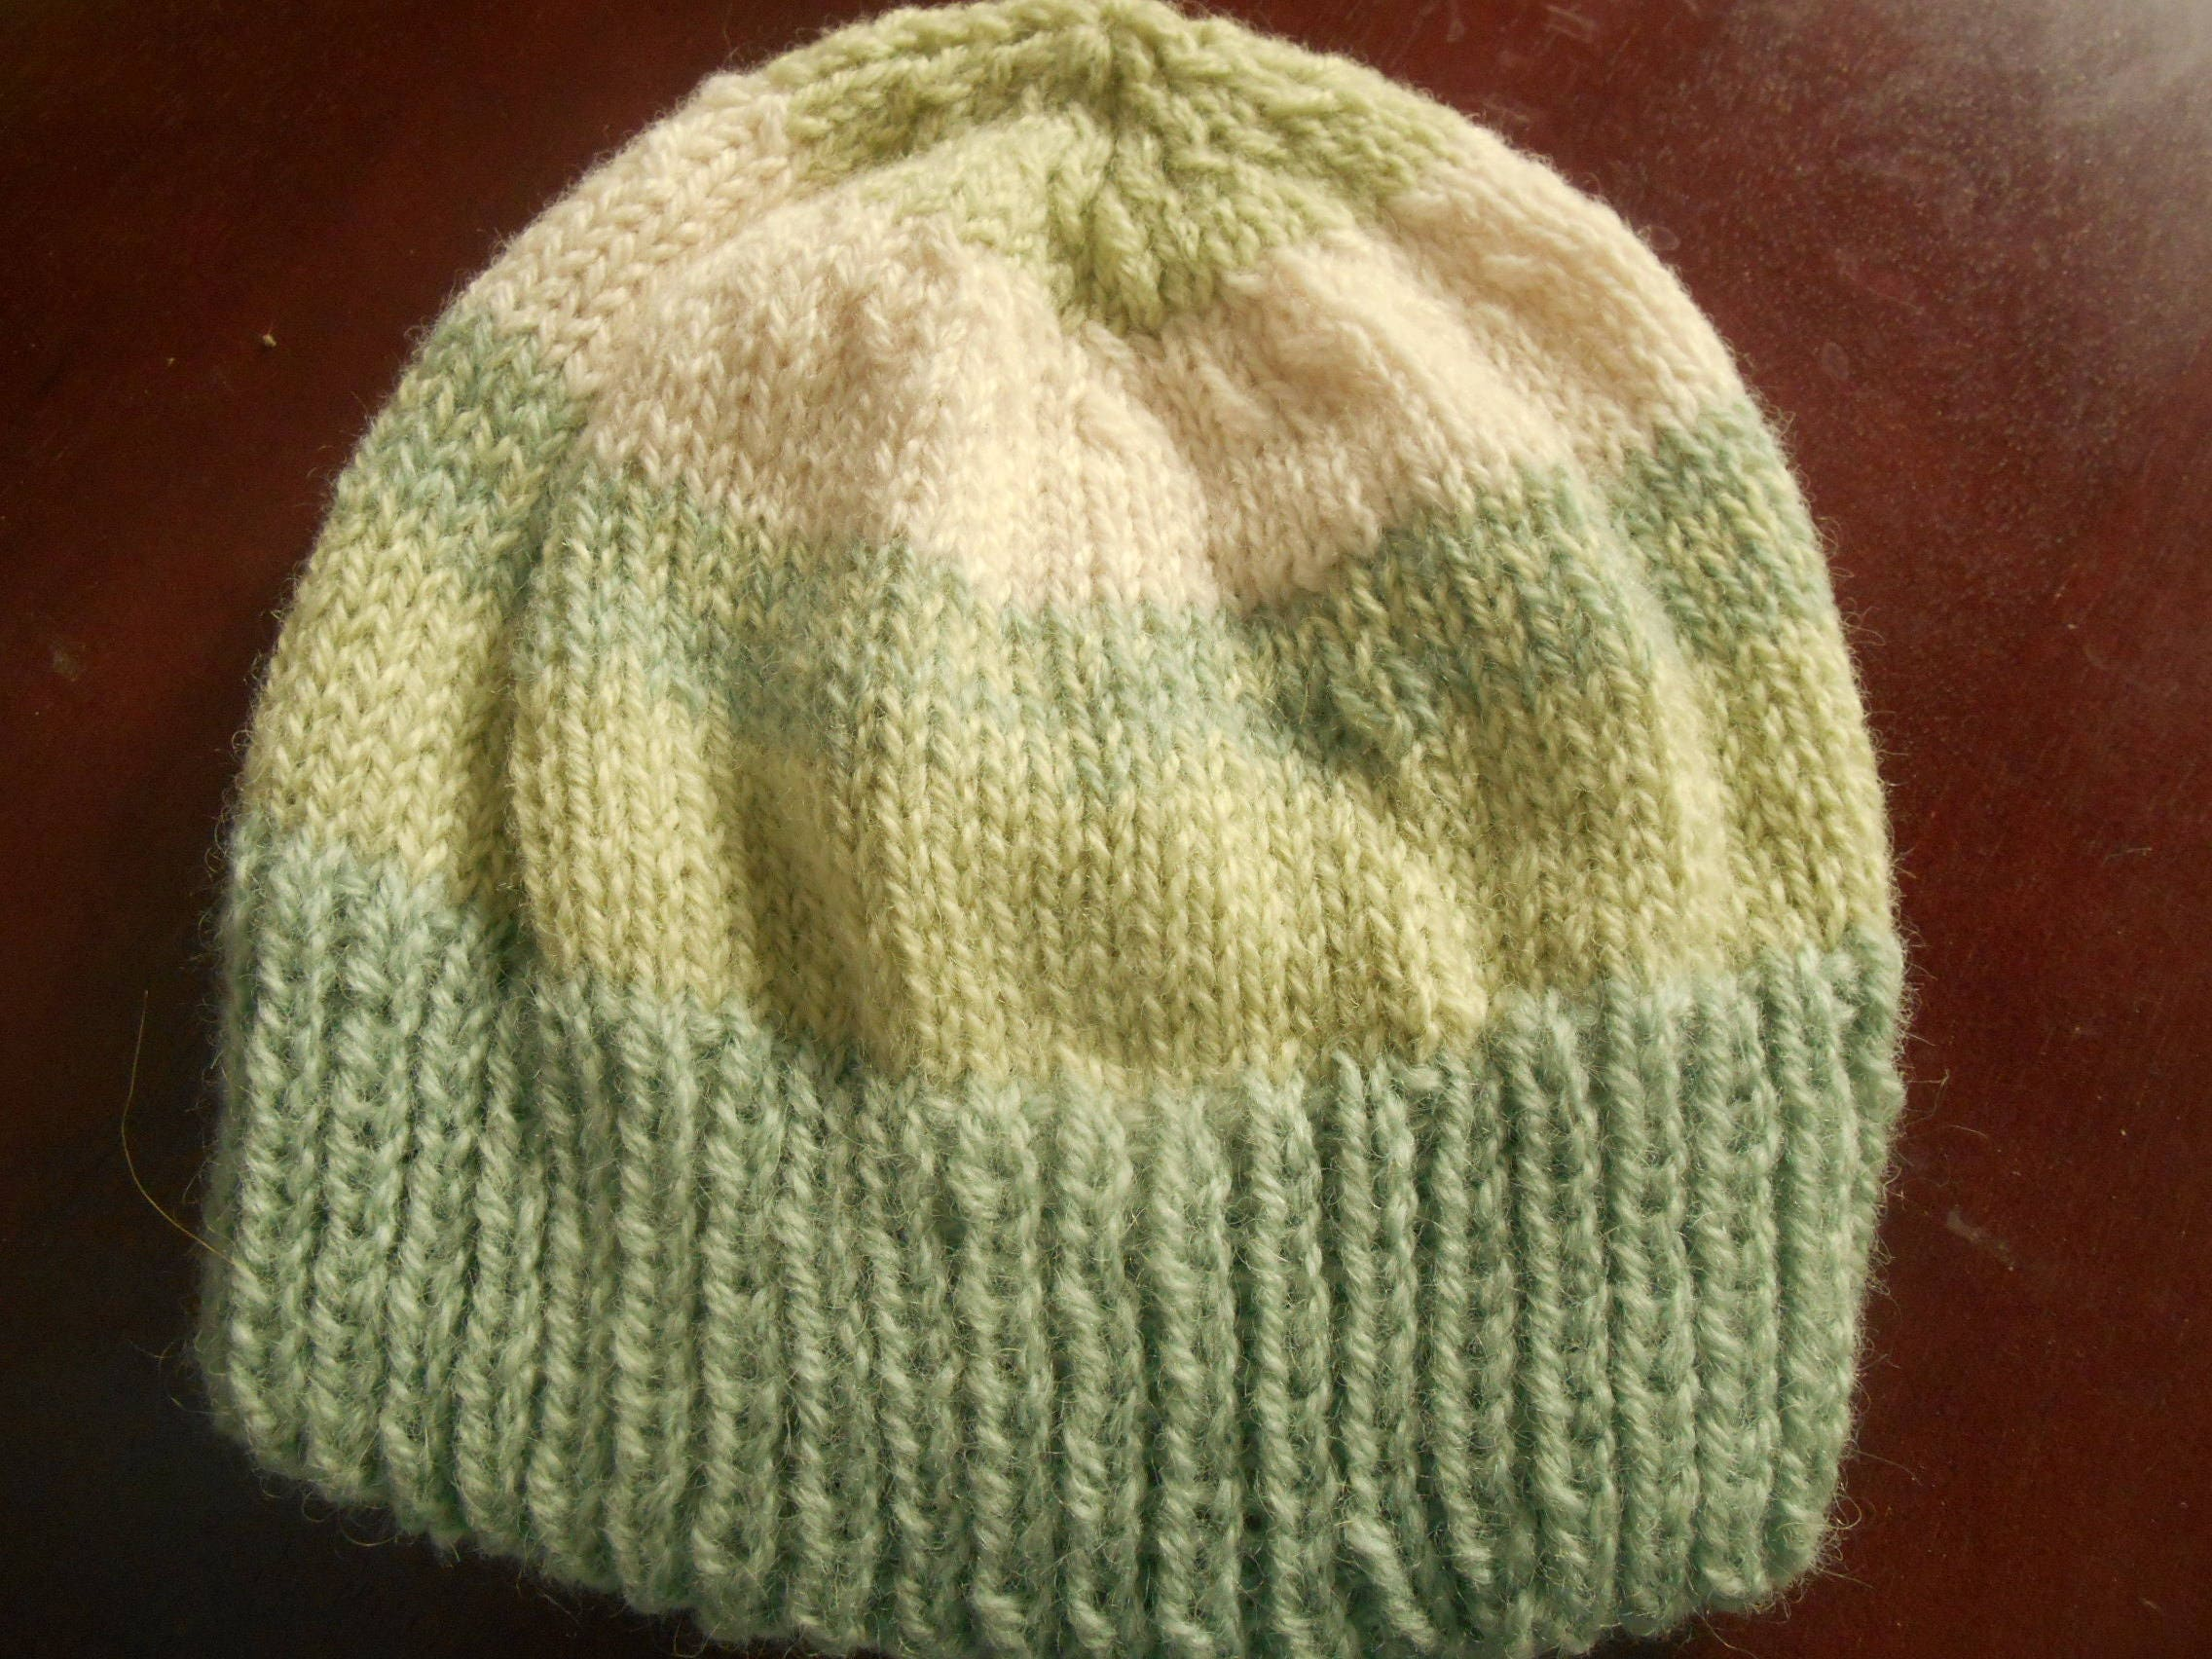 Hand knit hand dyed New Zealand wool hat knitted watchcap cap  ea915a90568